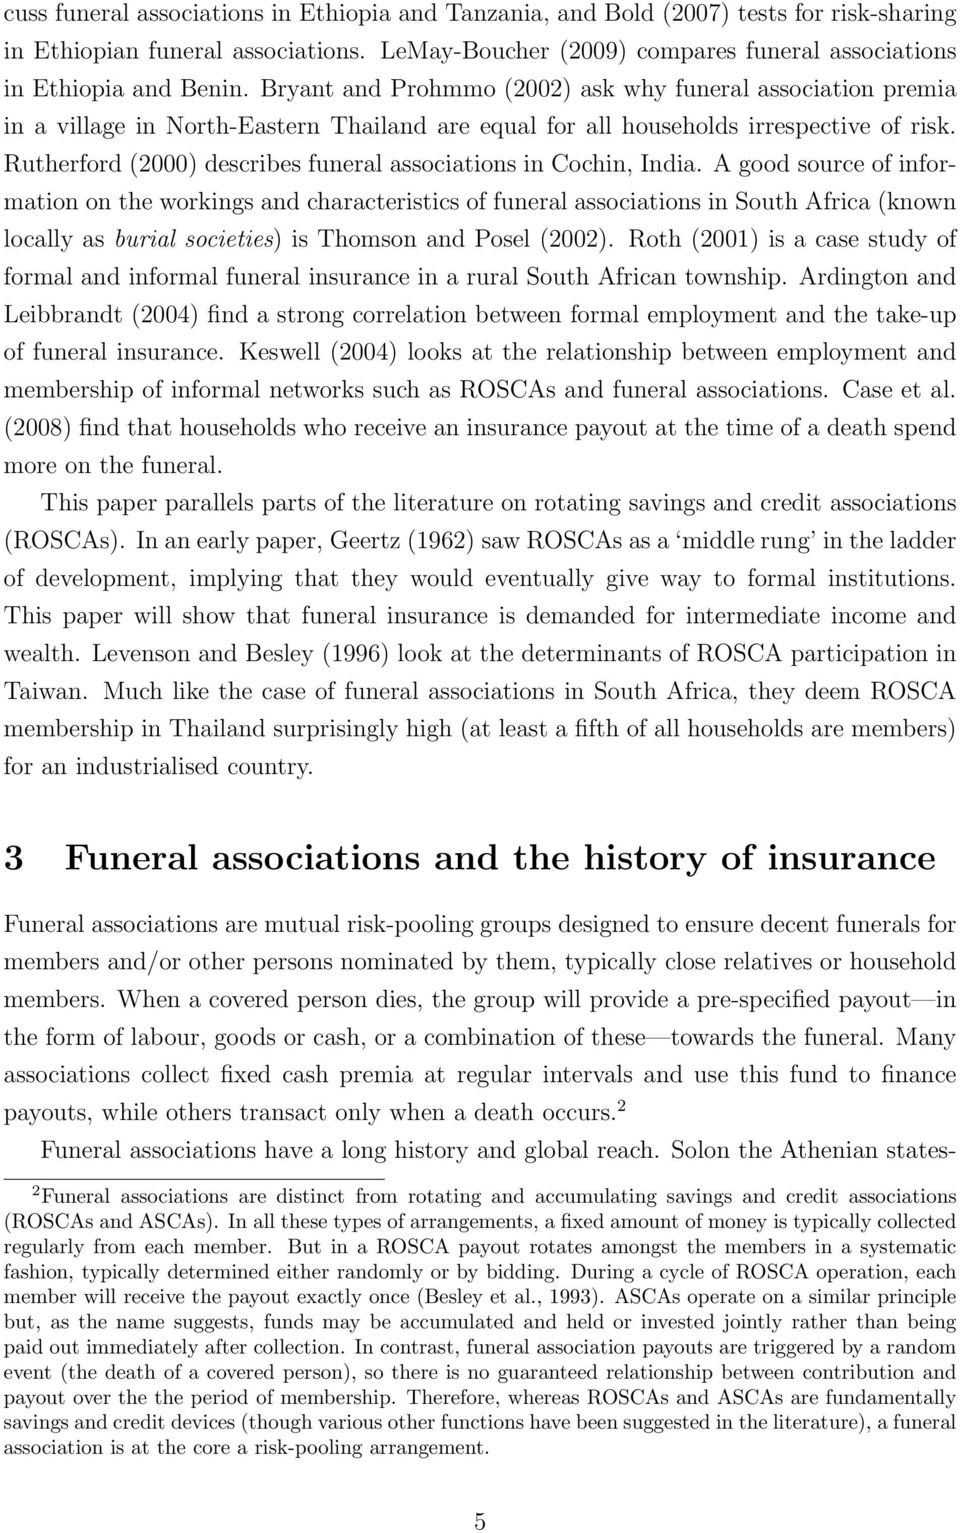 Rutherford (2000) describes funeral associations in Cochin, India.